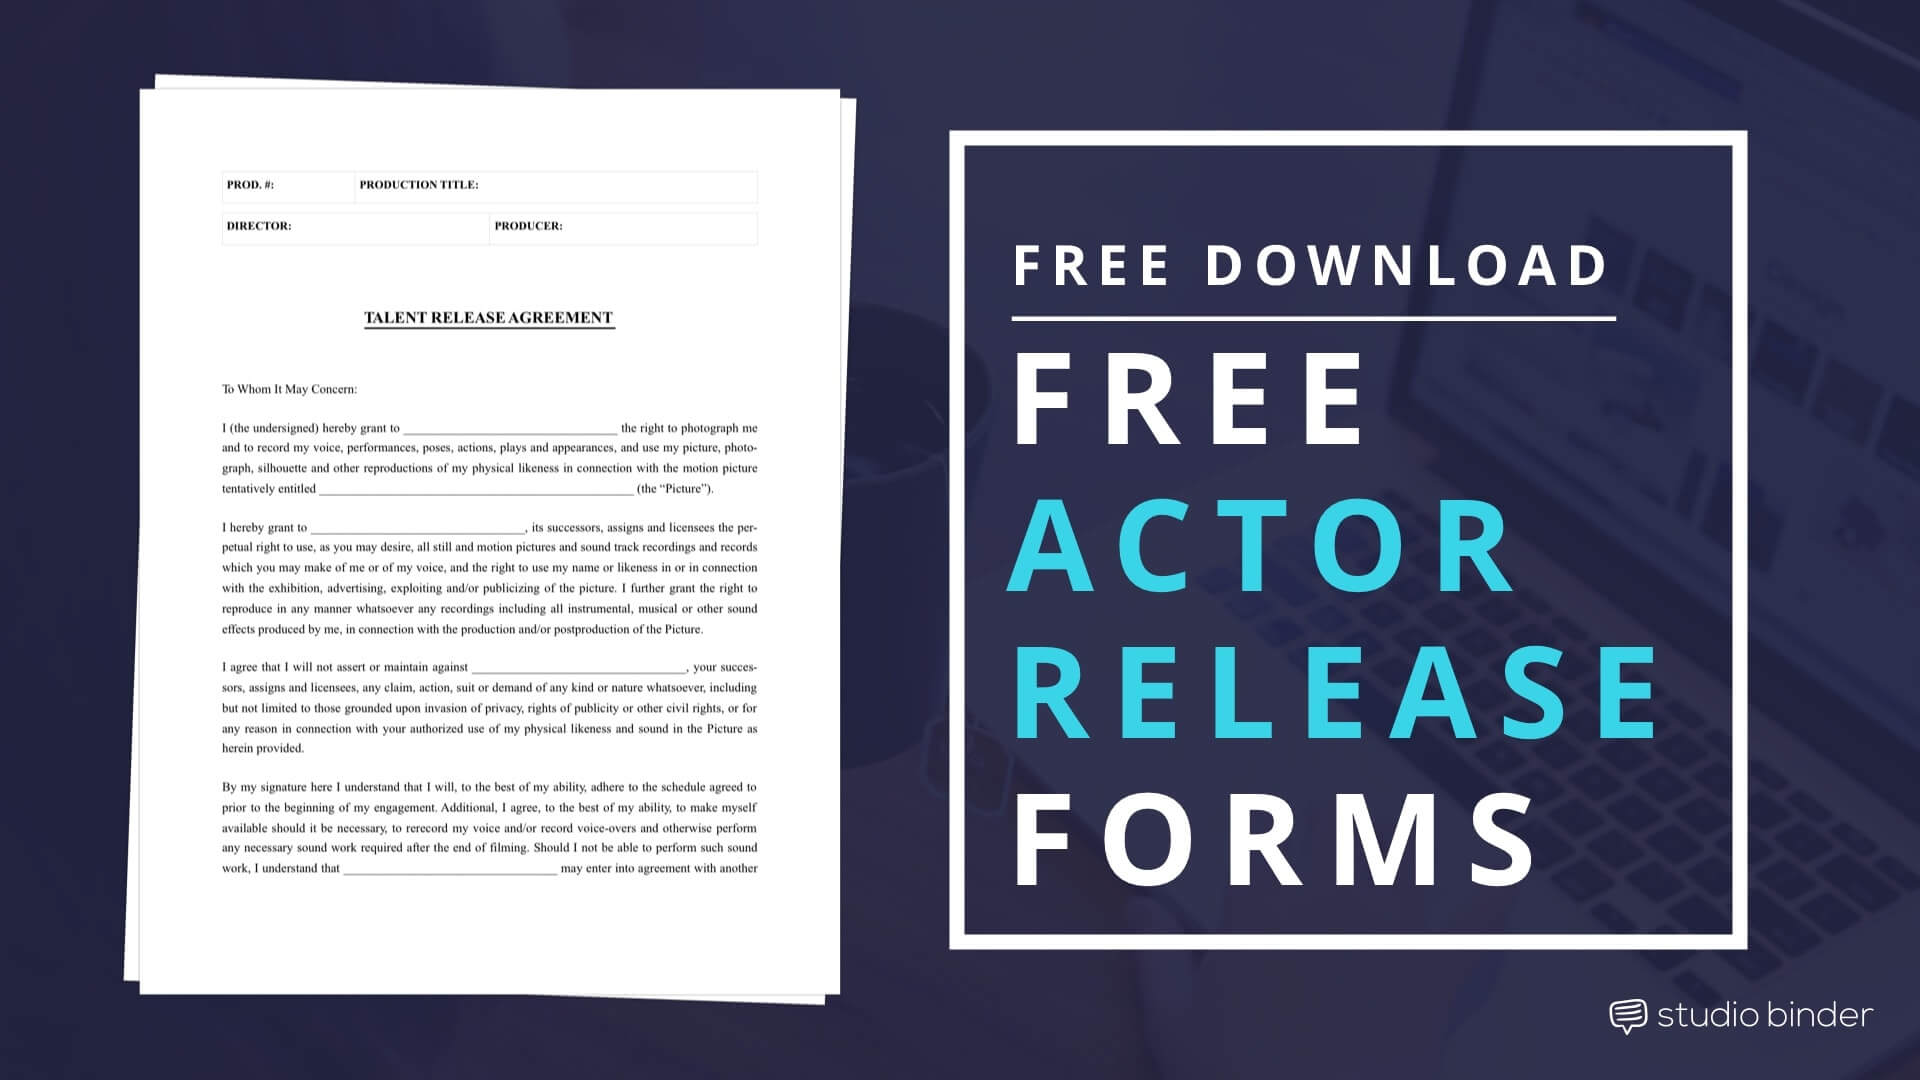 Download Film Actor Release Form Template - StudioBinder